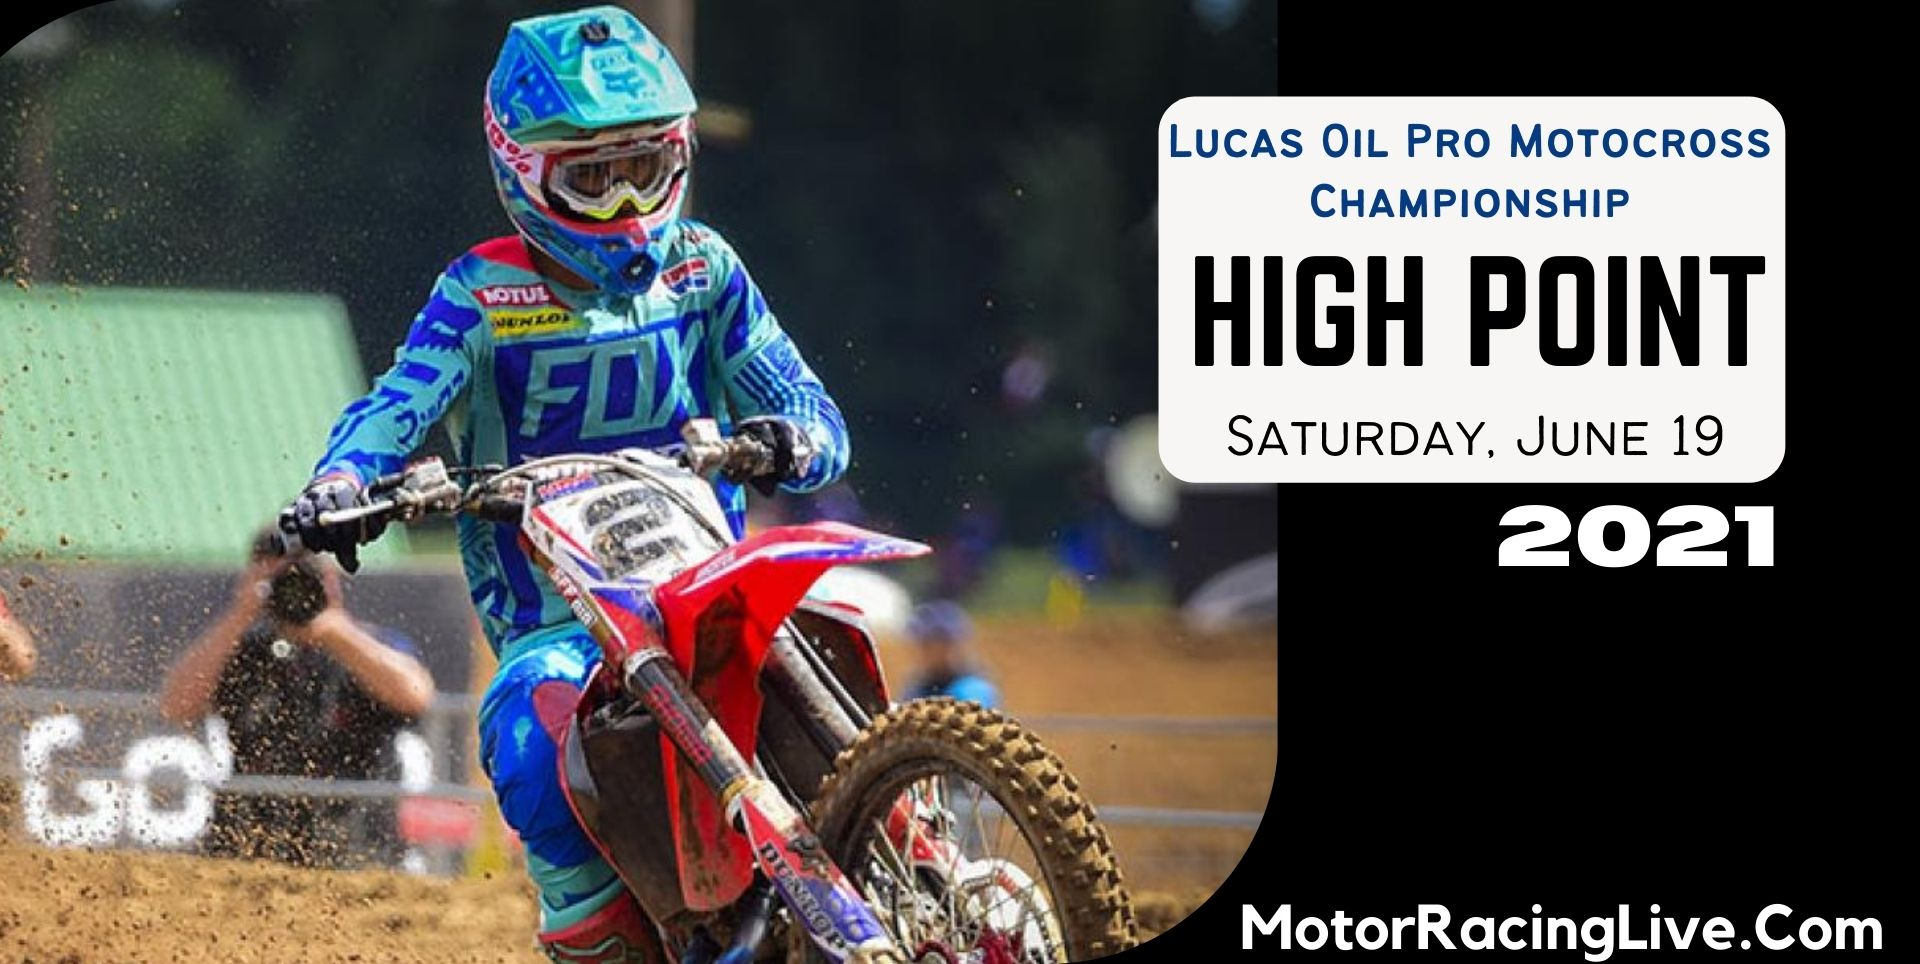 High Point Live Streaming 2021 | Motocross